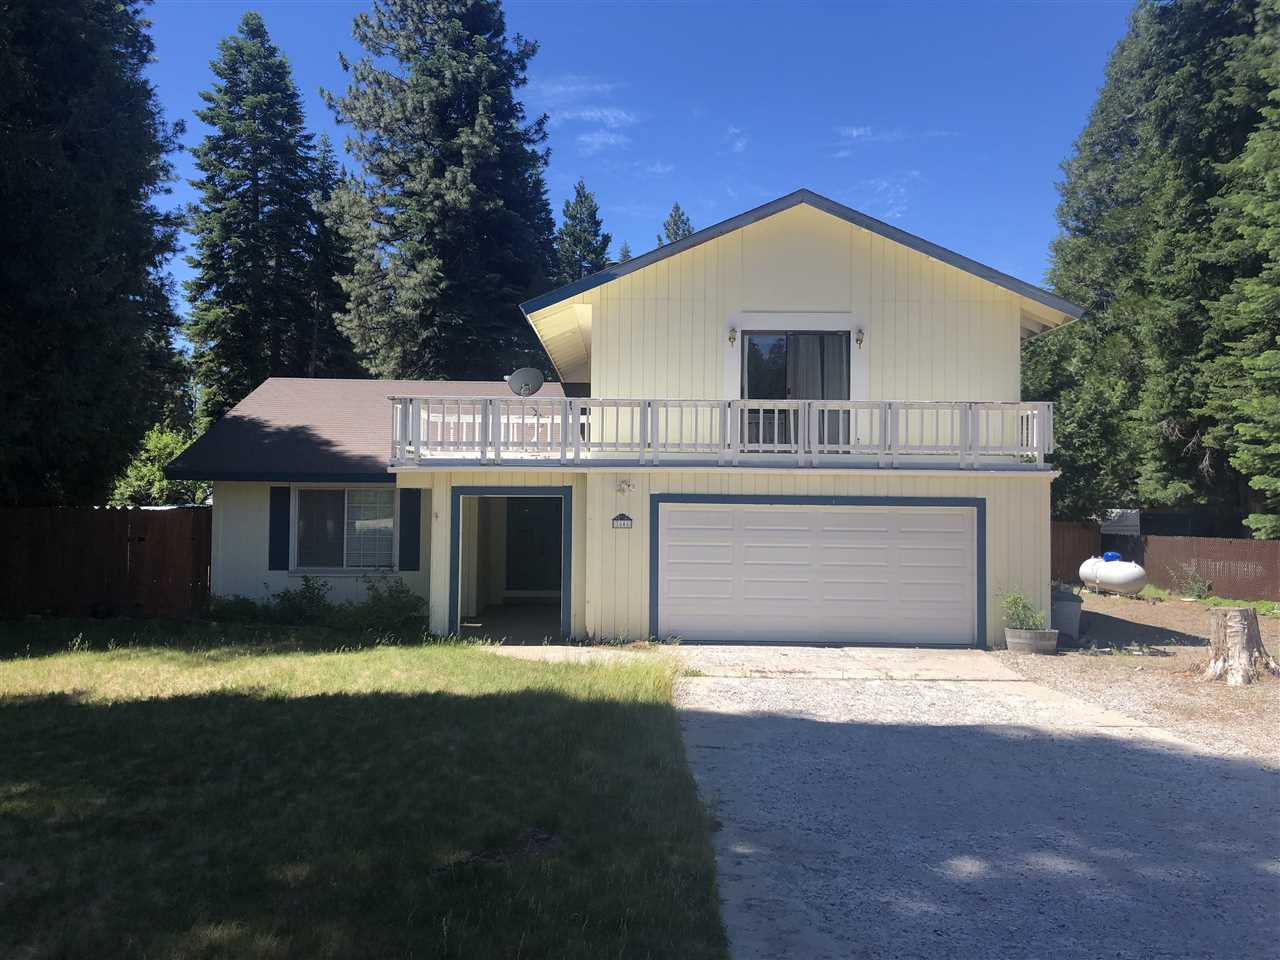 Single Family Home for Active at 3646 Park Hill Drive 3646 Park Hill Drive Lake Almanor, California 96137 United States